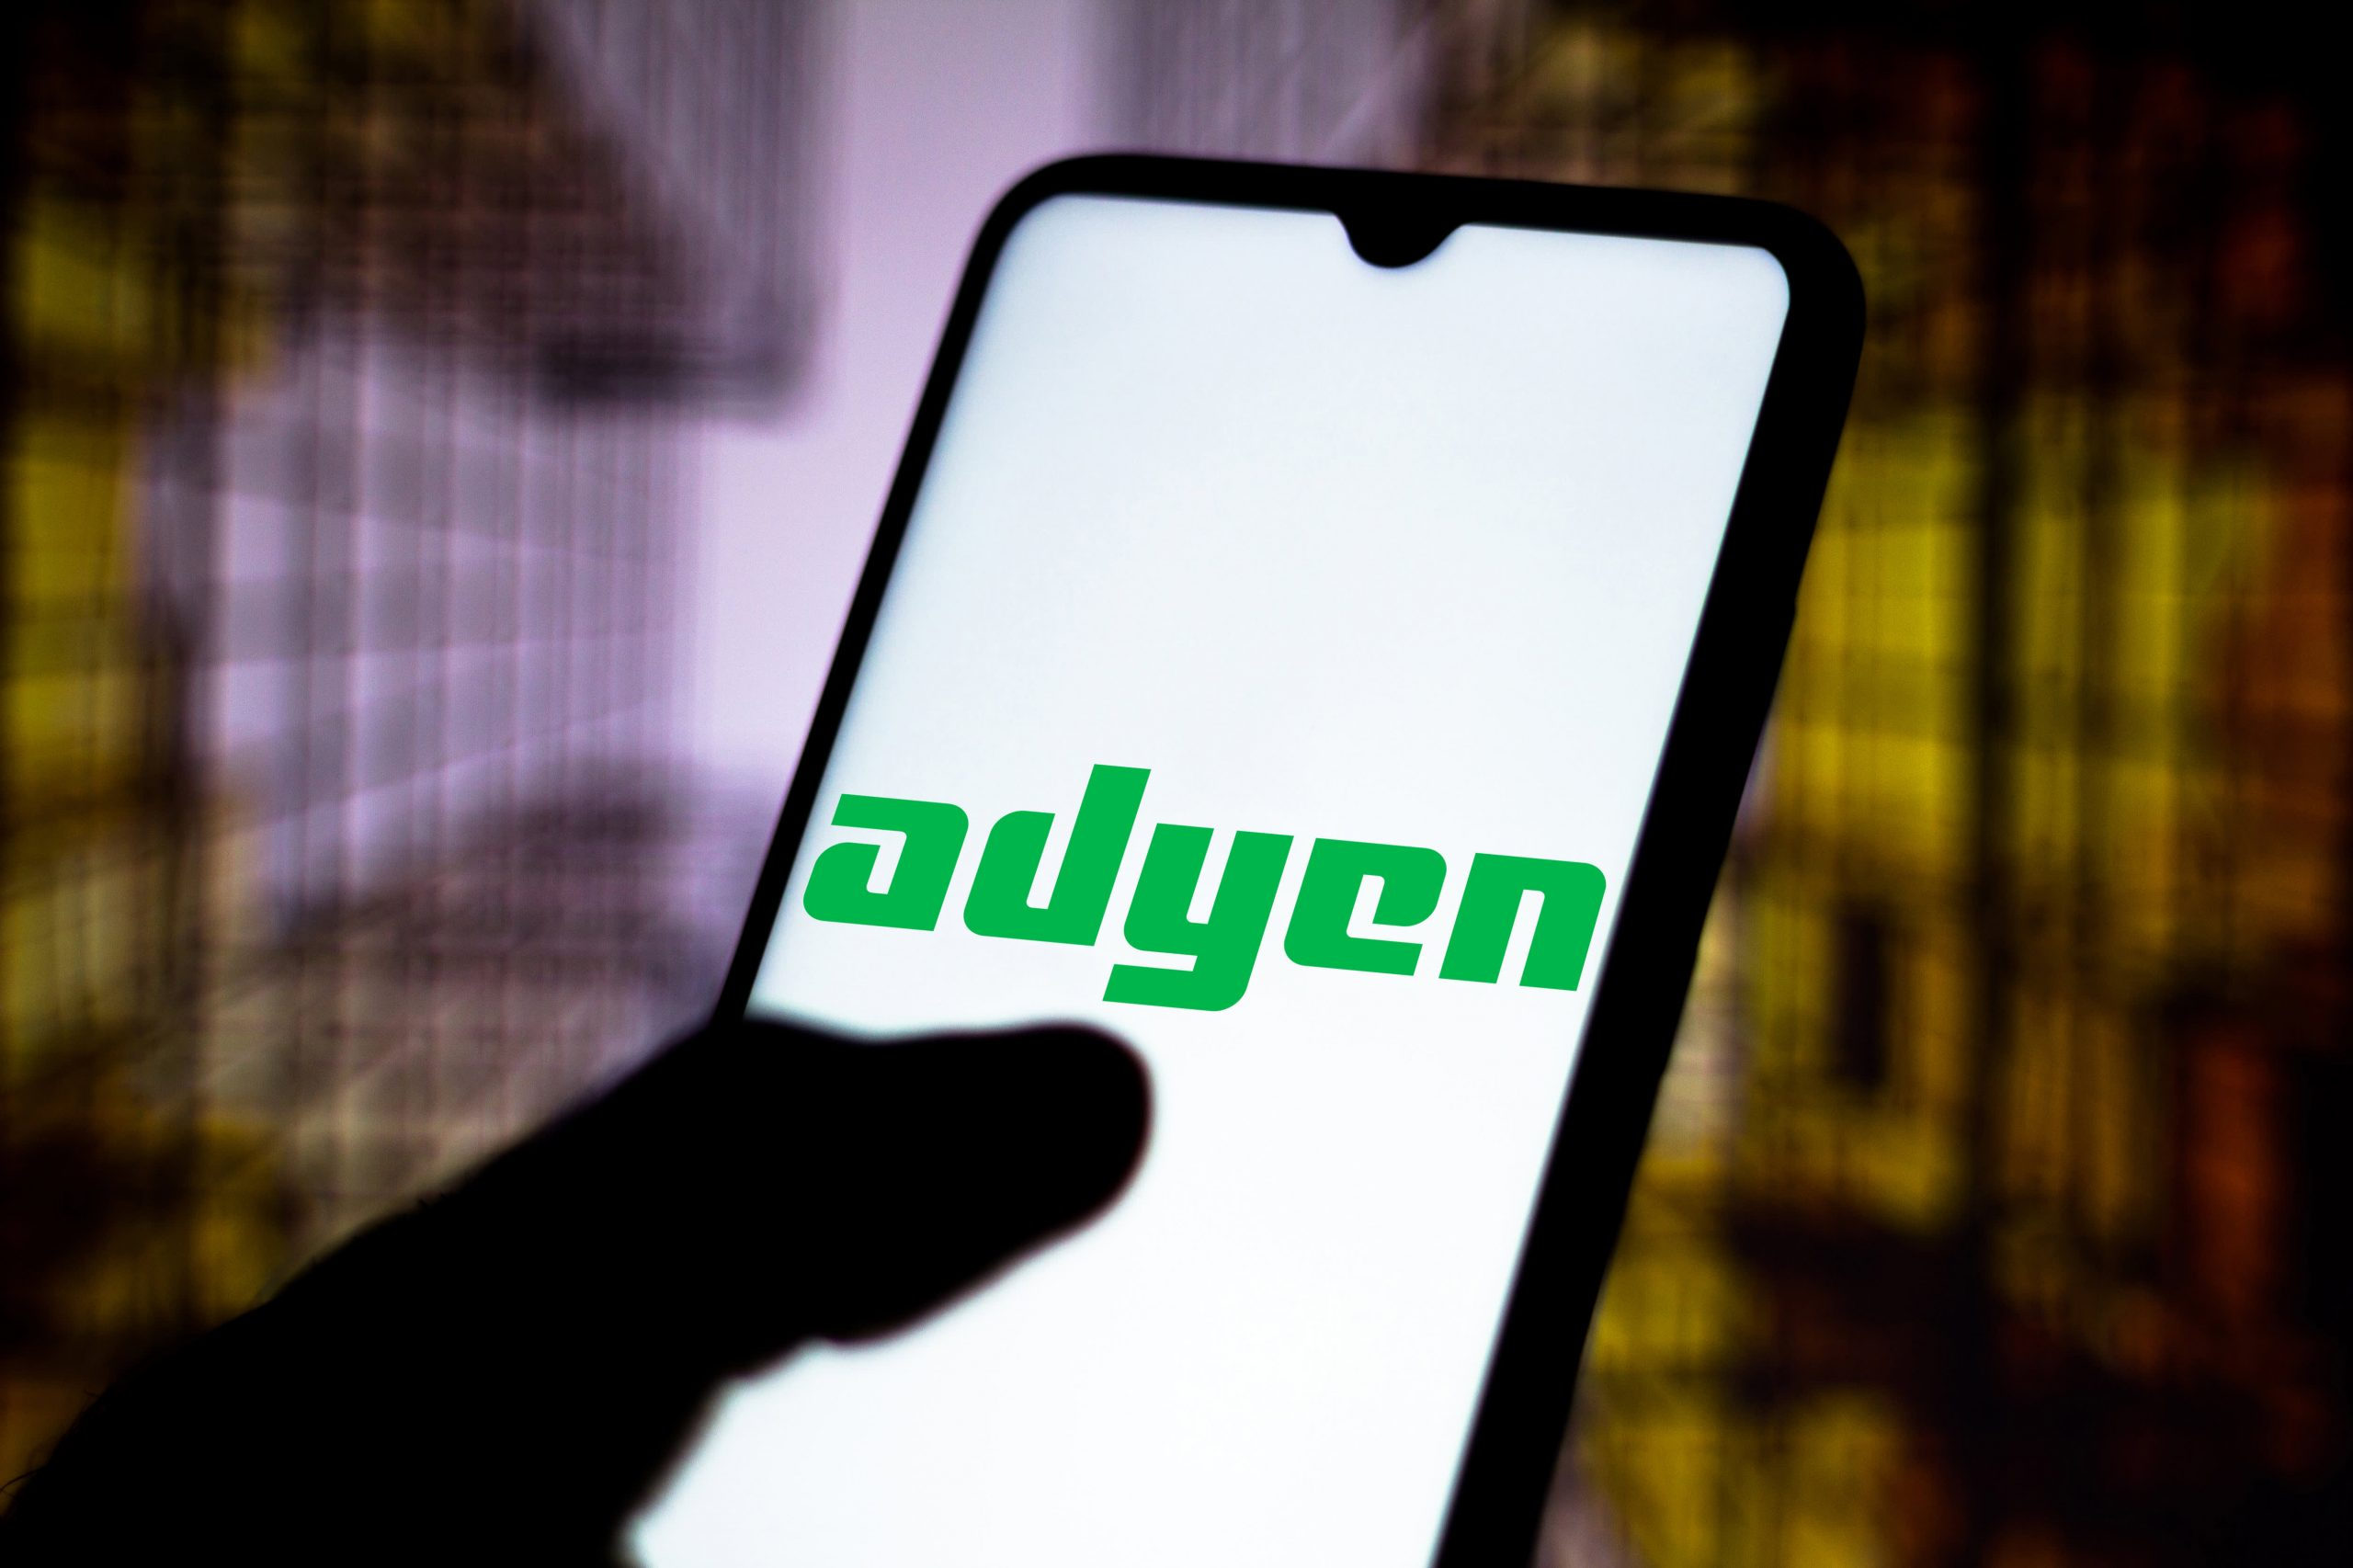 Fintech giant Adyen says it has no interest in bitcoin as a payment method and clients aren't asking for it